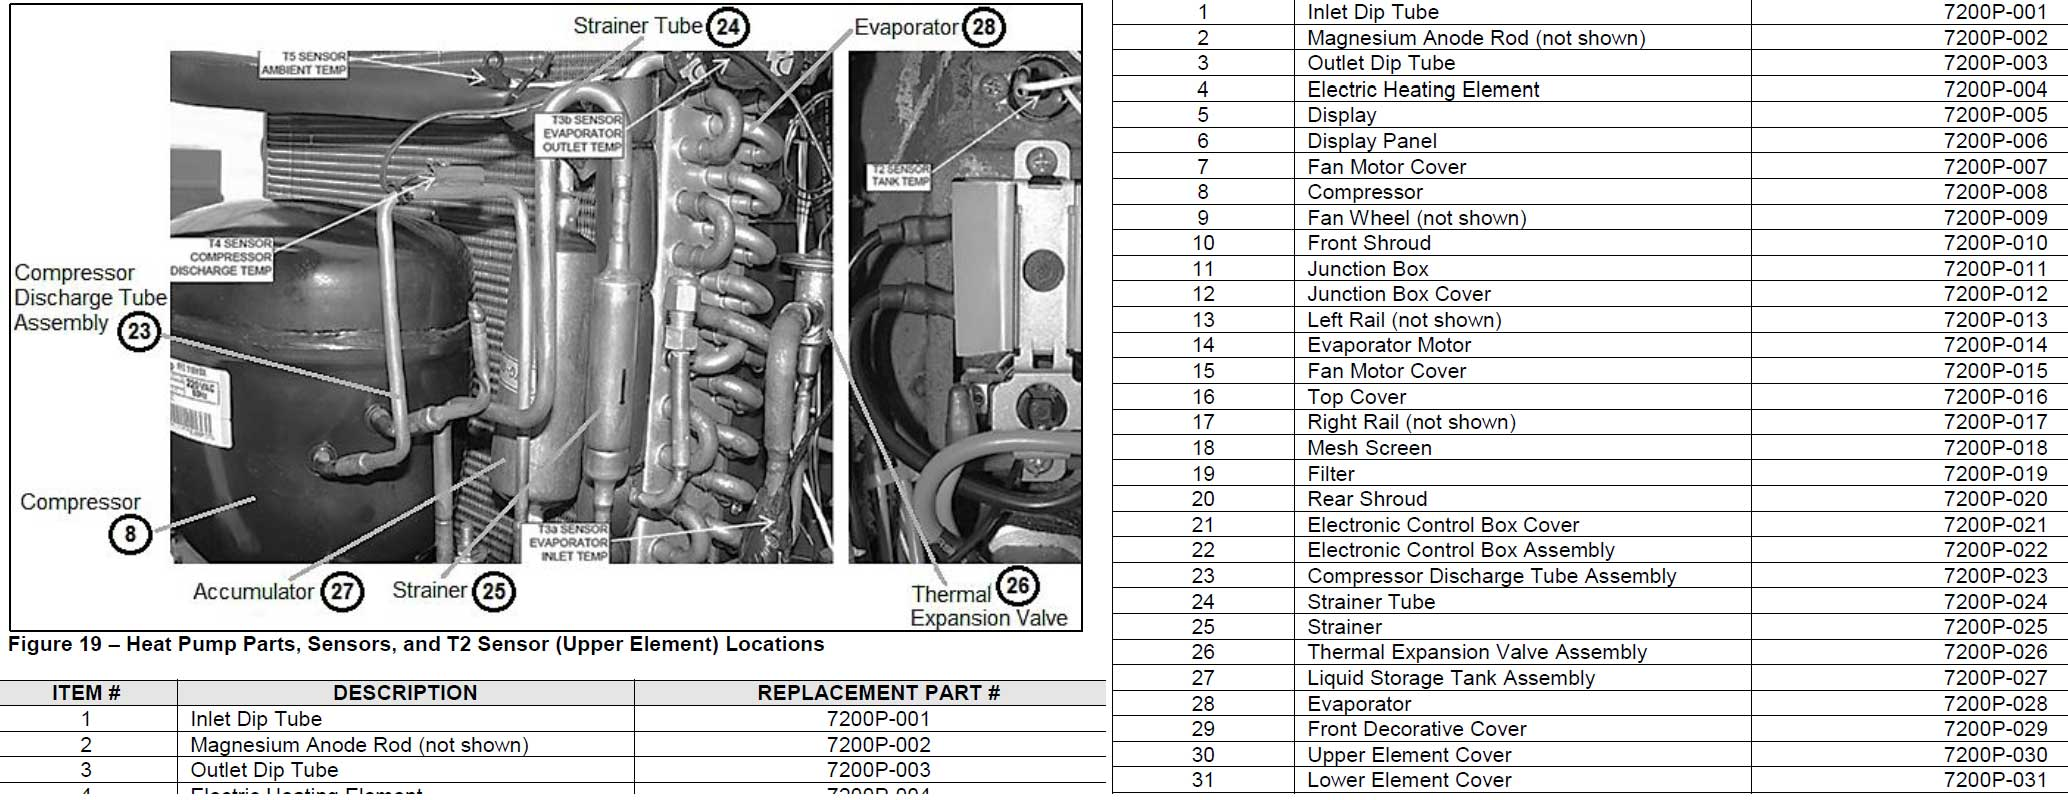 HTP parts wiring diagram for rheem heat pump readingrat net rheem heat pump wiring schematic at bayanpartner.co